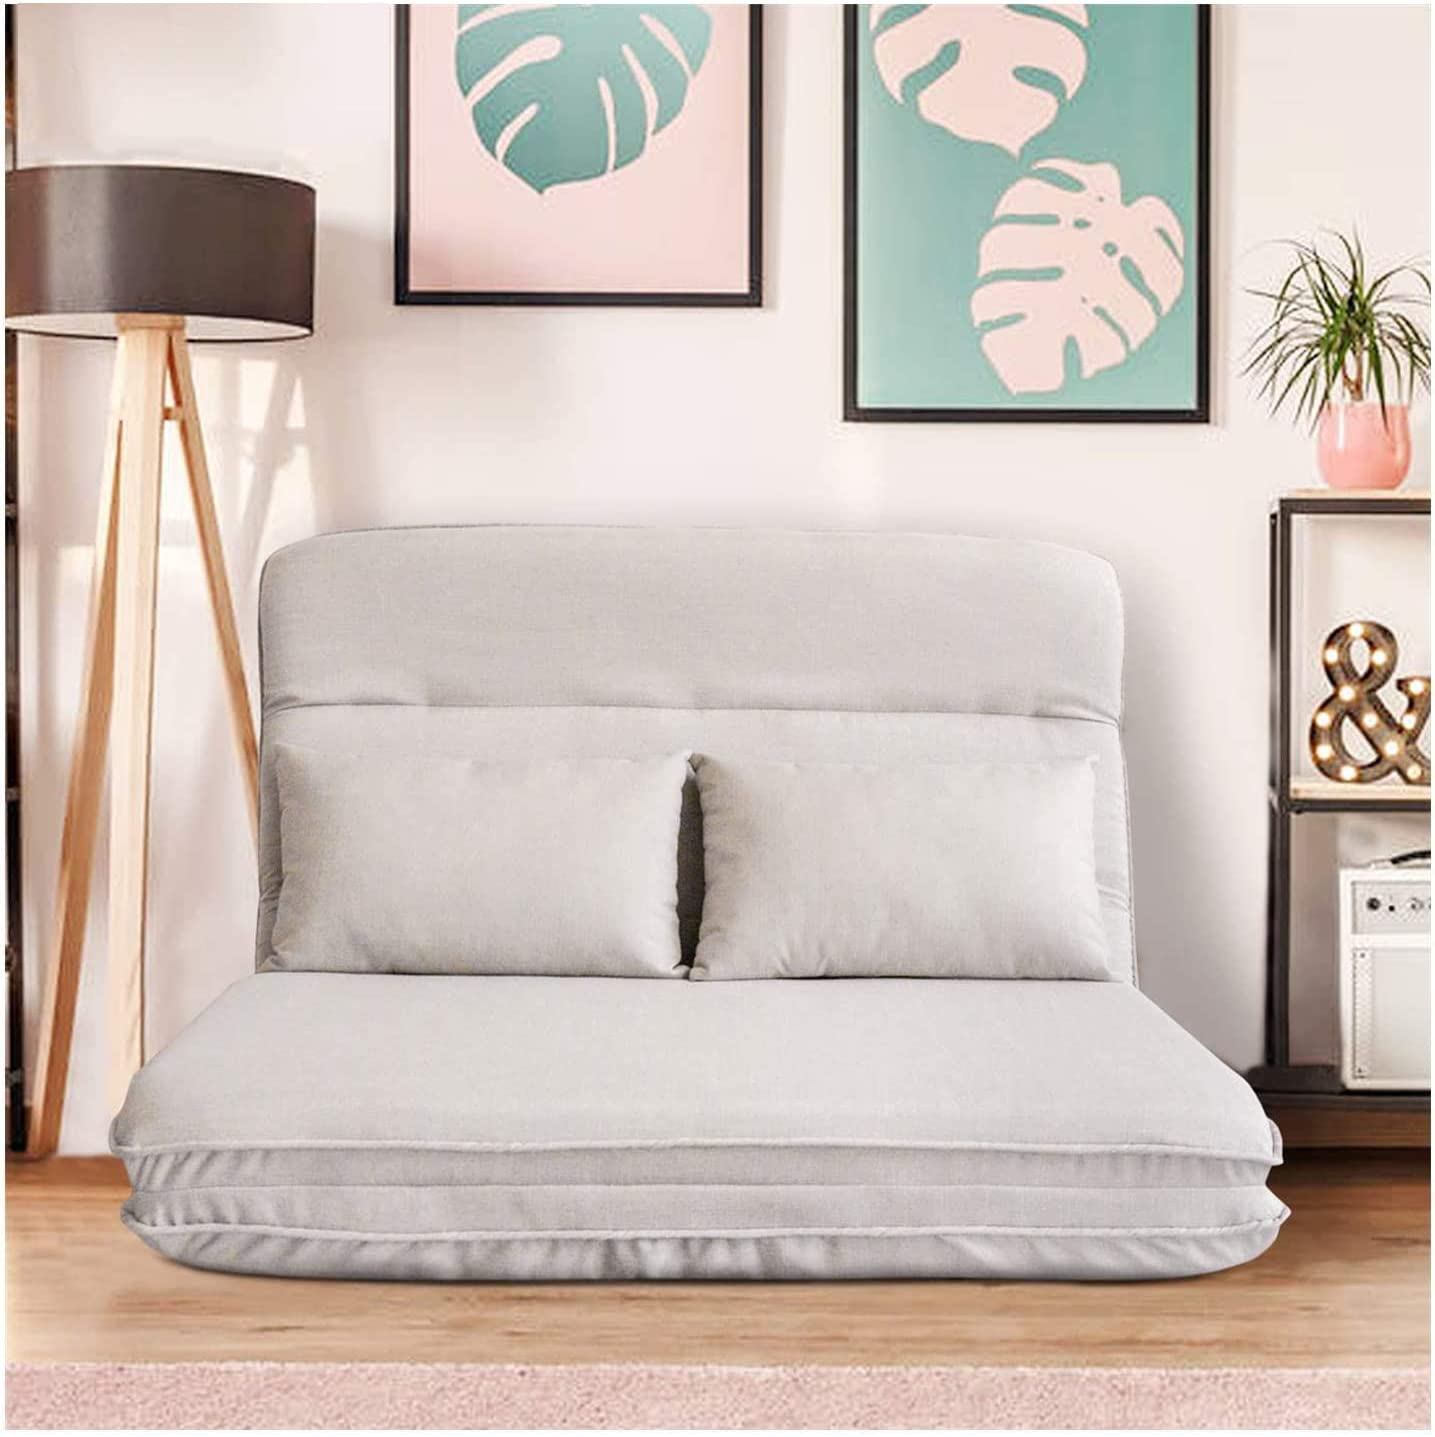 Floor Couch Folding Lazy Sofa Bed Foldable Recliner Bed with Pillow for Living Room and Bedroom, with 5 Reclining Position (Grey)